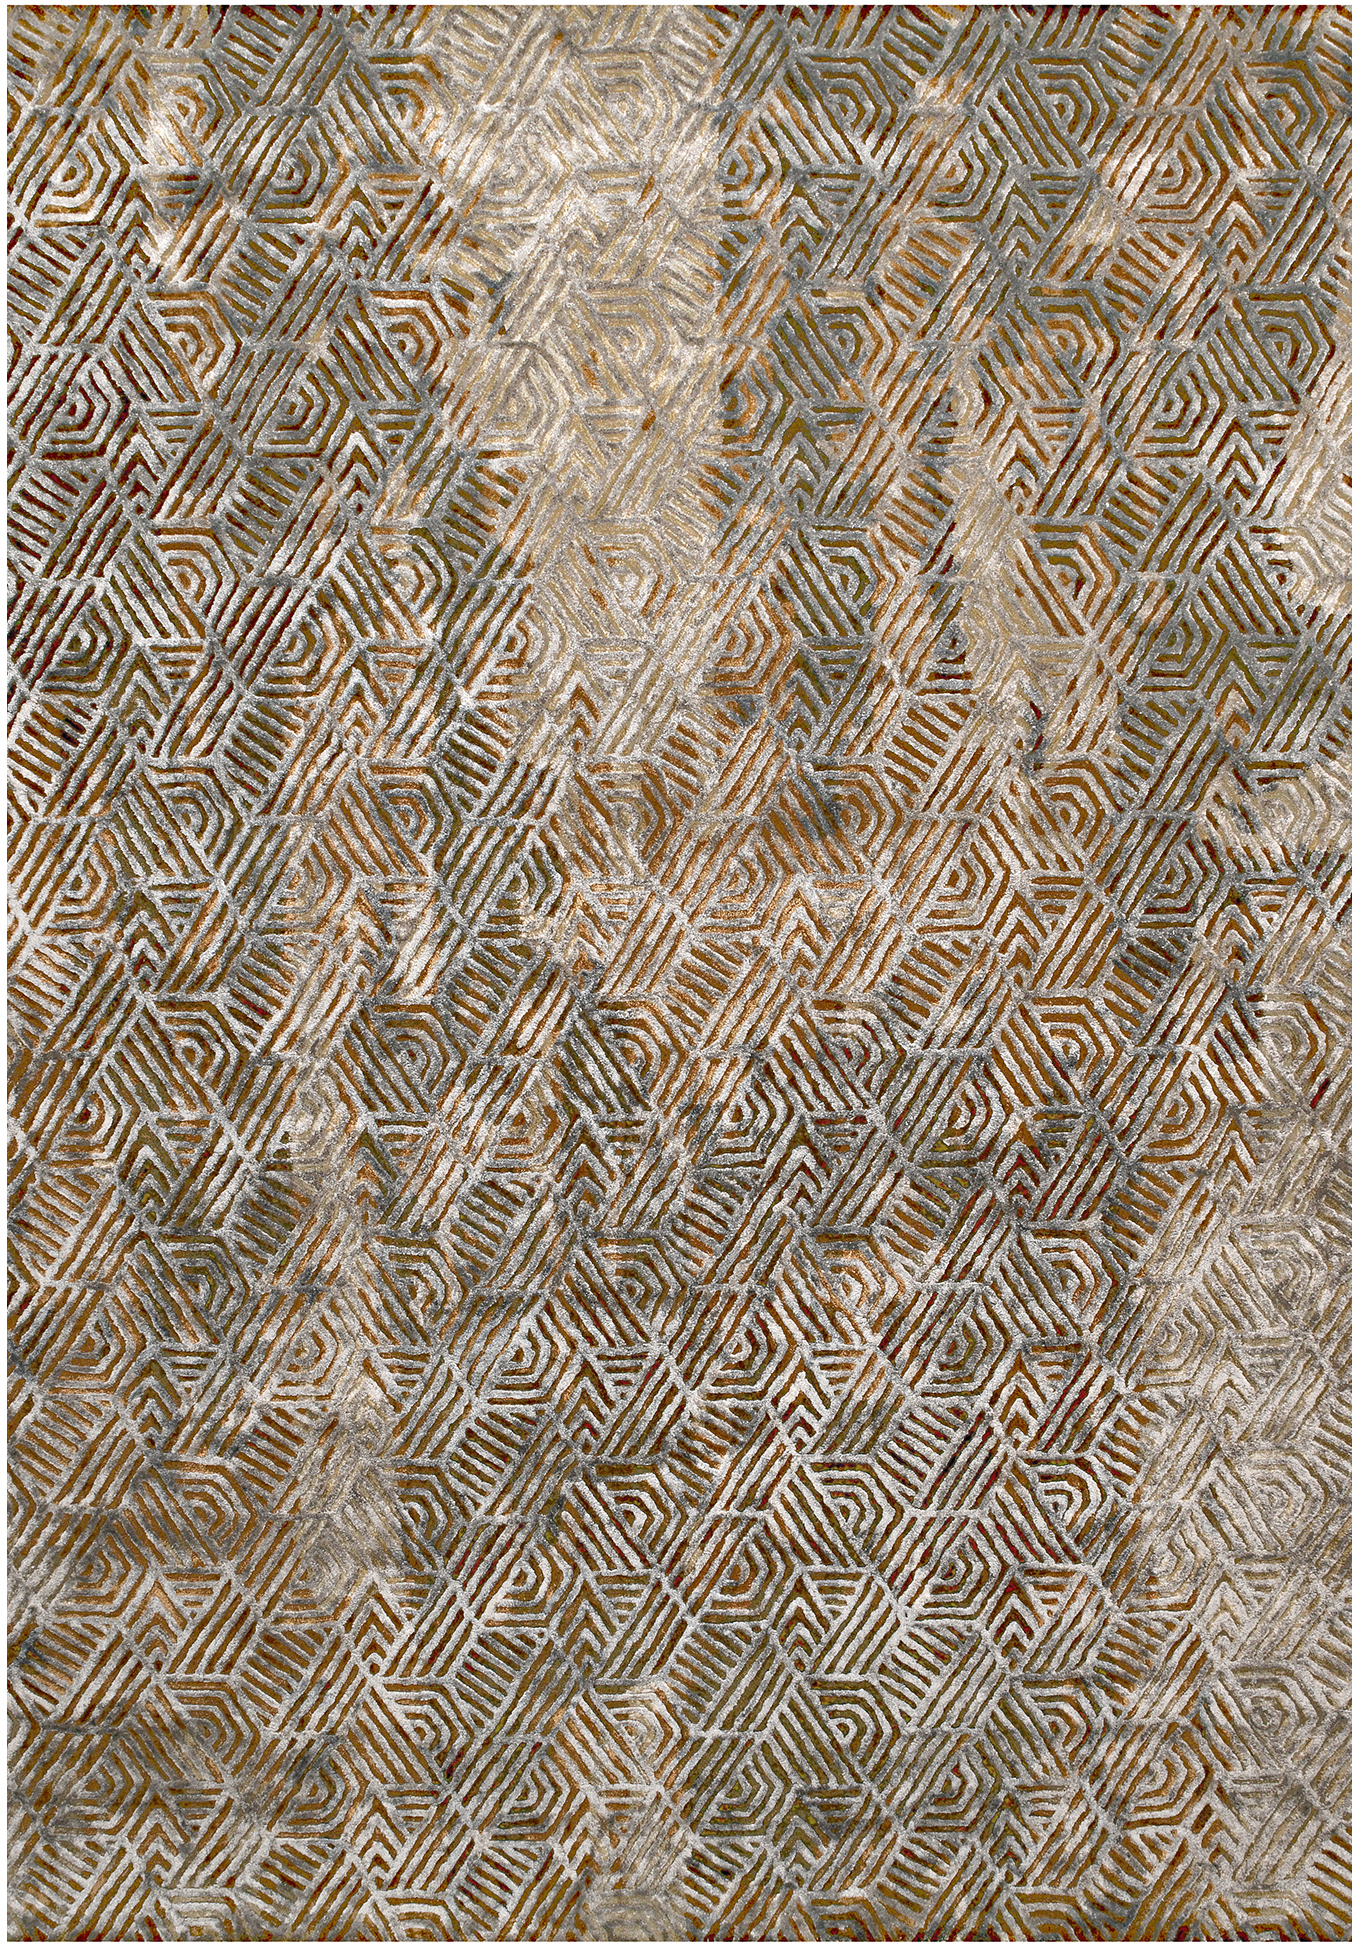 Arroyo Copper Charcoal Carpets & Rugs